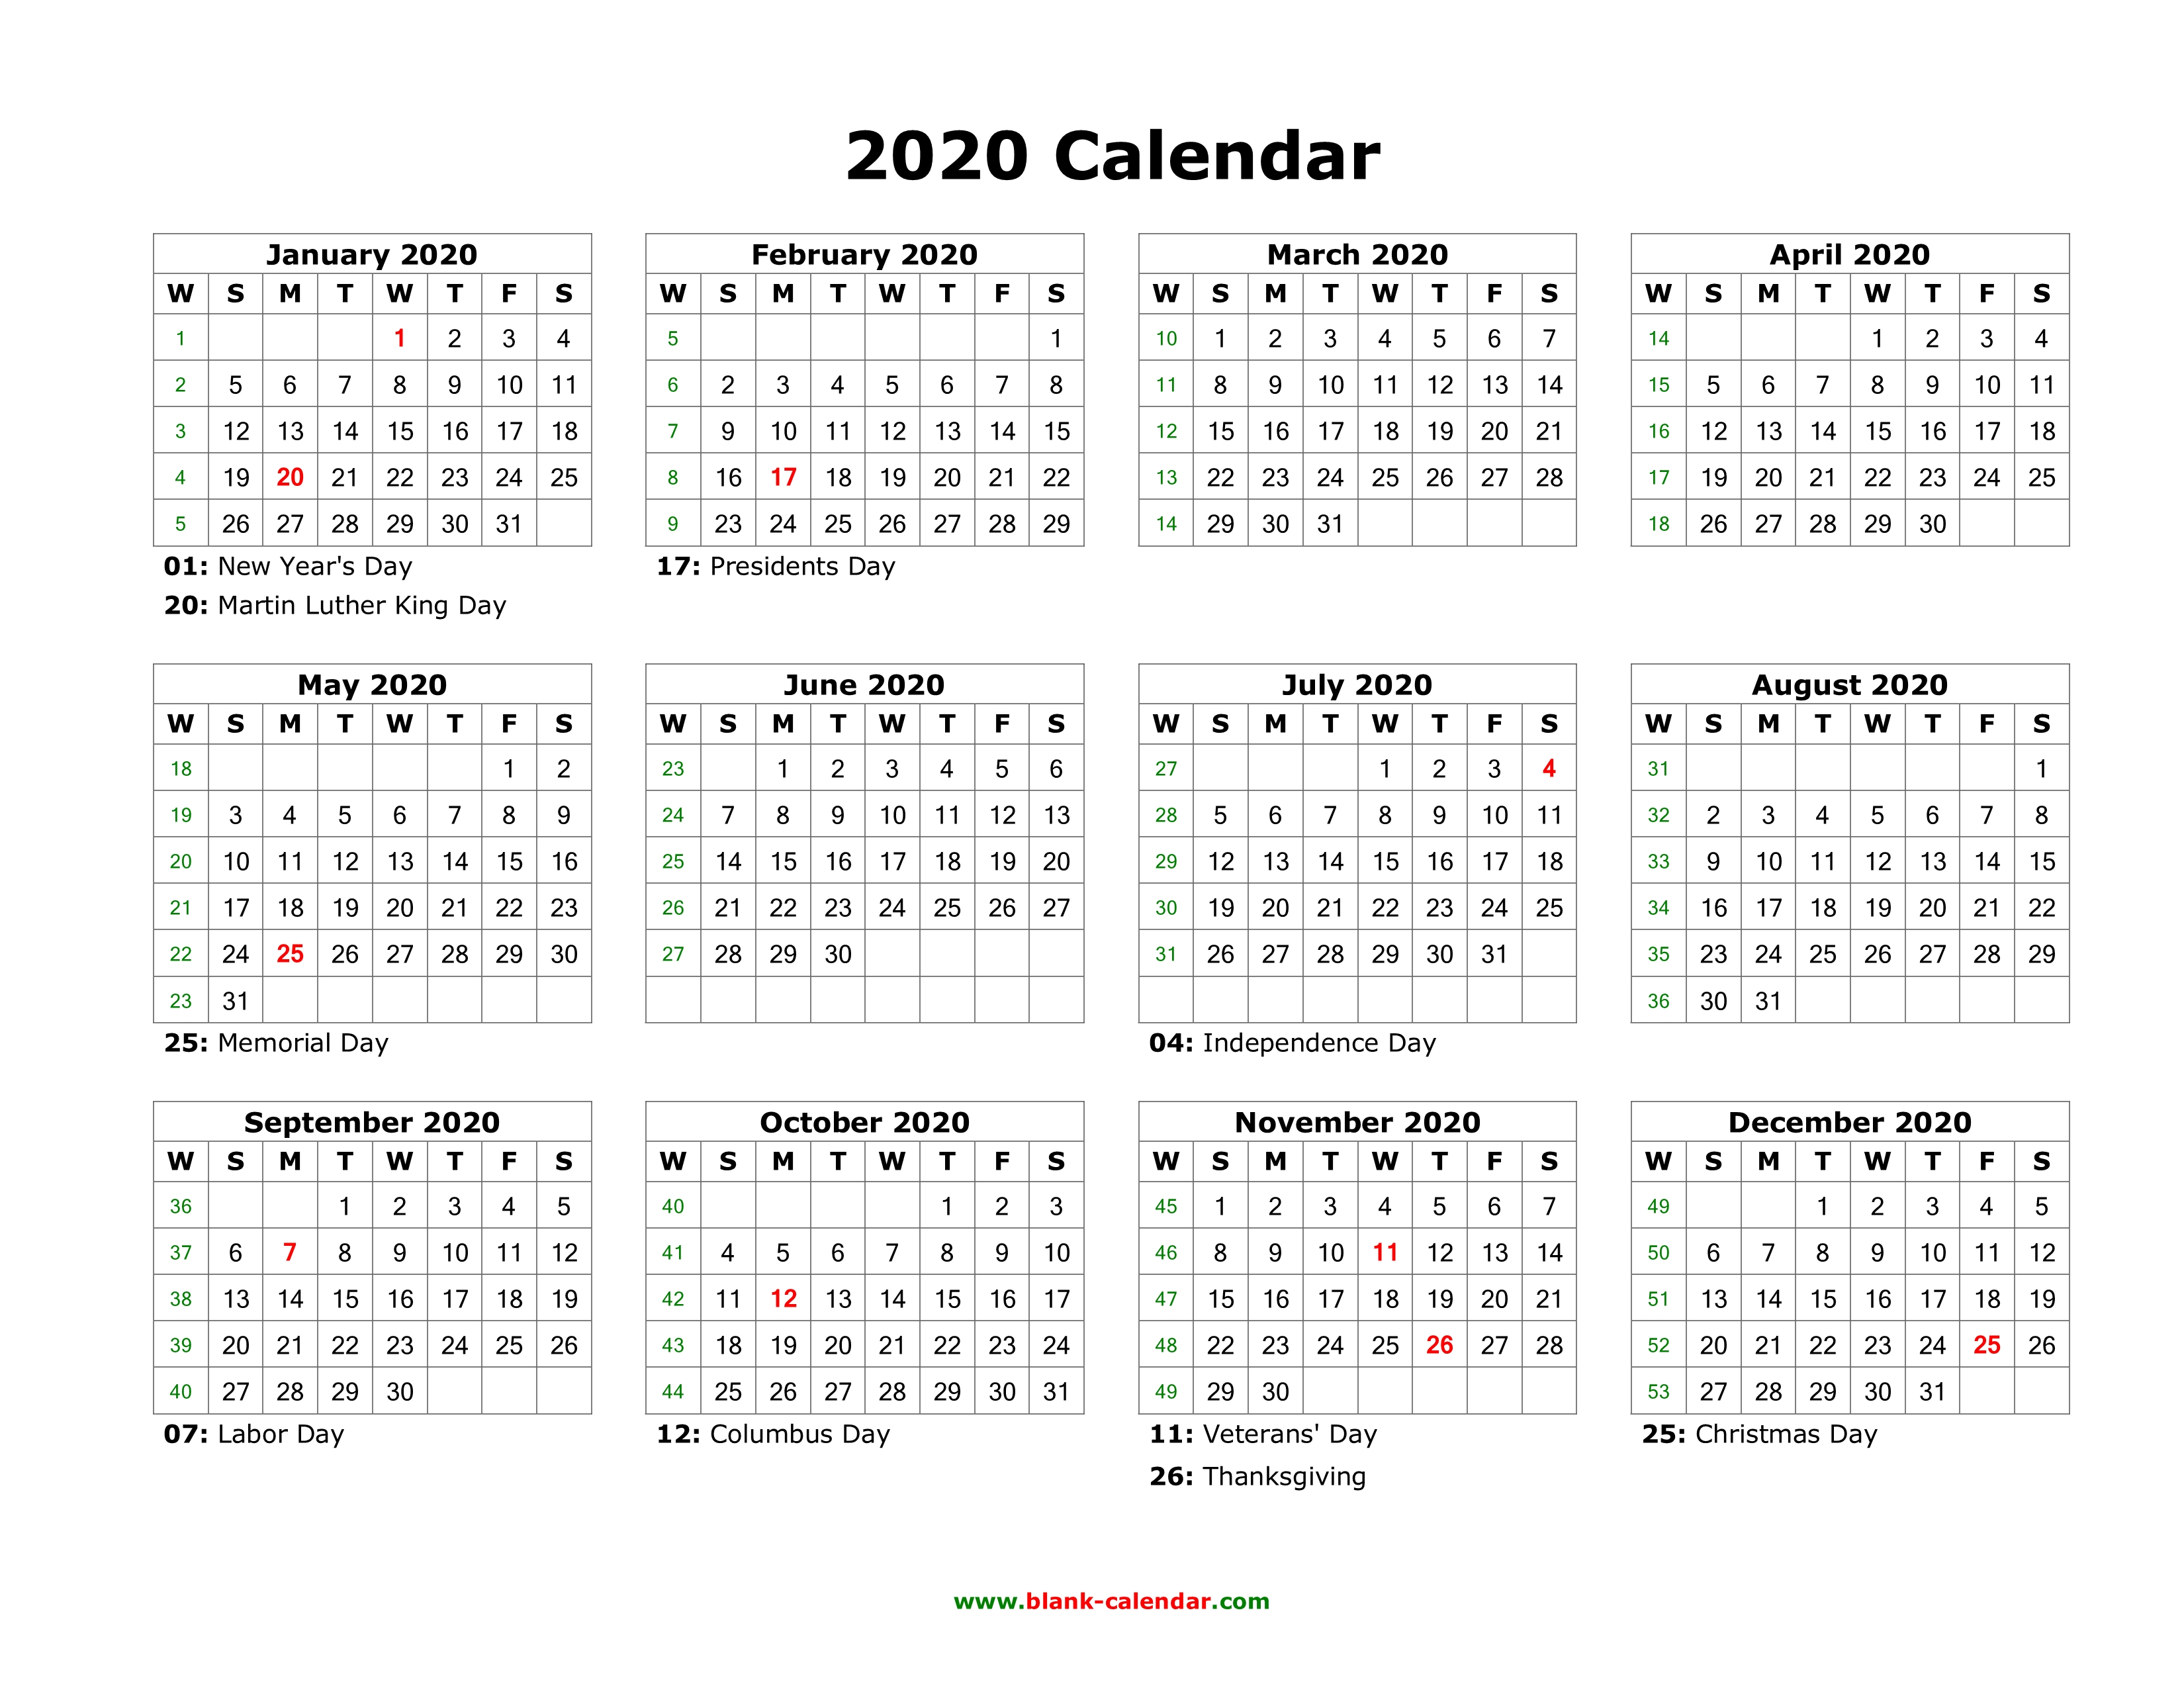 12 Month Printable Calendar 2020 Download Blank Calendar 2020 with US Holidays (12 months on one